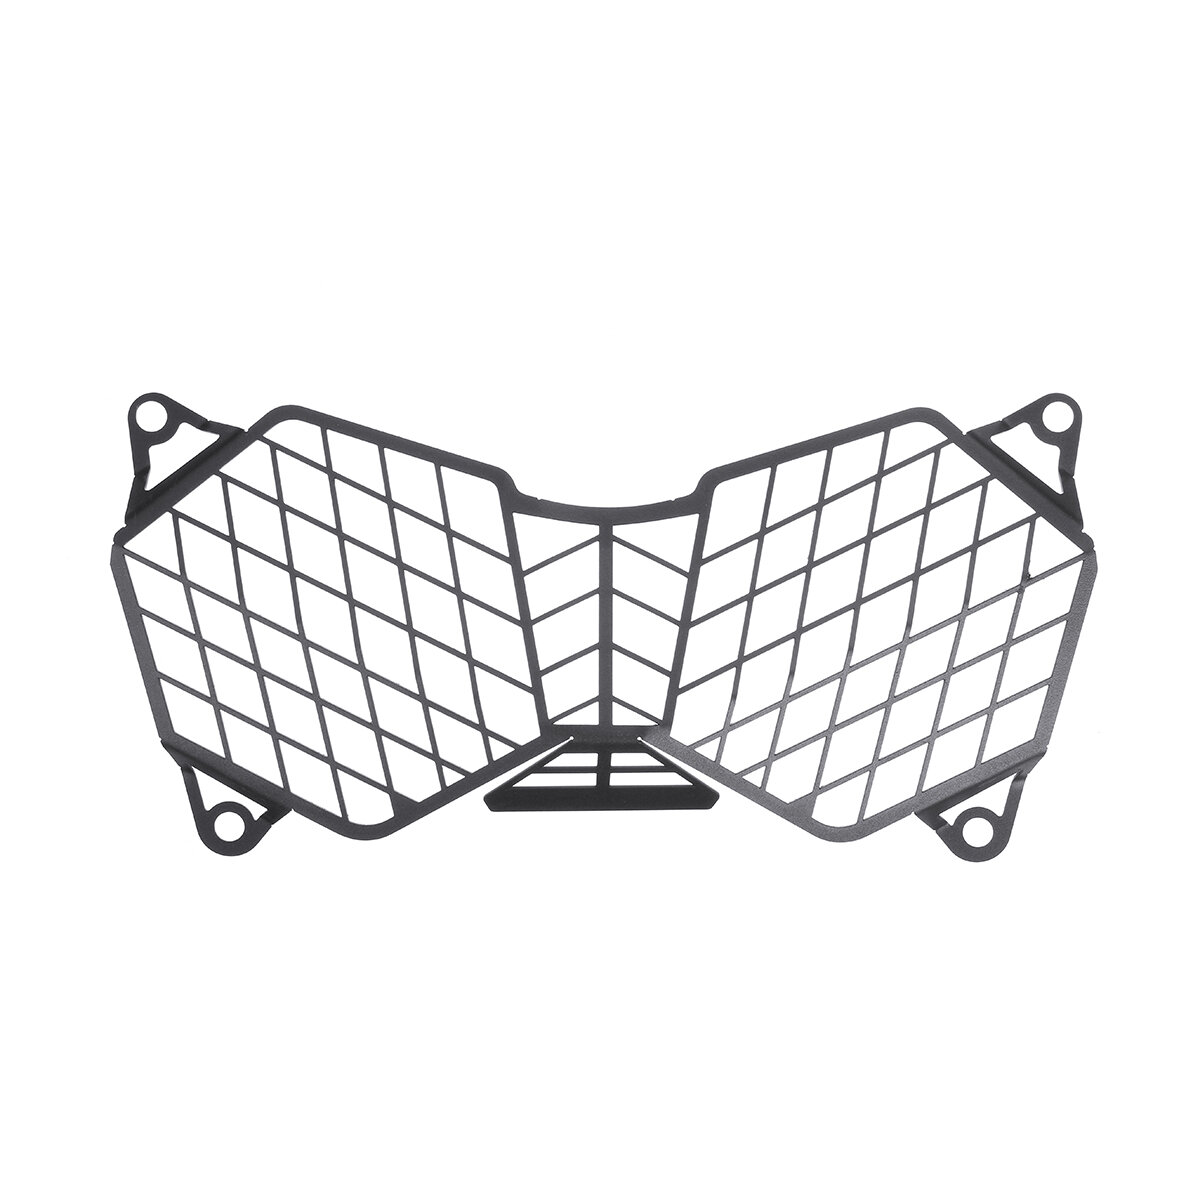 Black Motorcycle Headlight Grille Light Cover Protective Guard Protector For Triumph Tiger 800 2010-2017 Explorer 1200 2